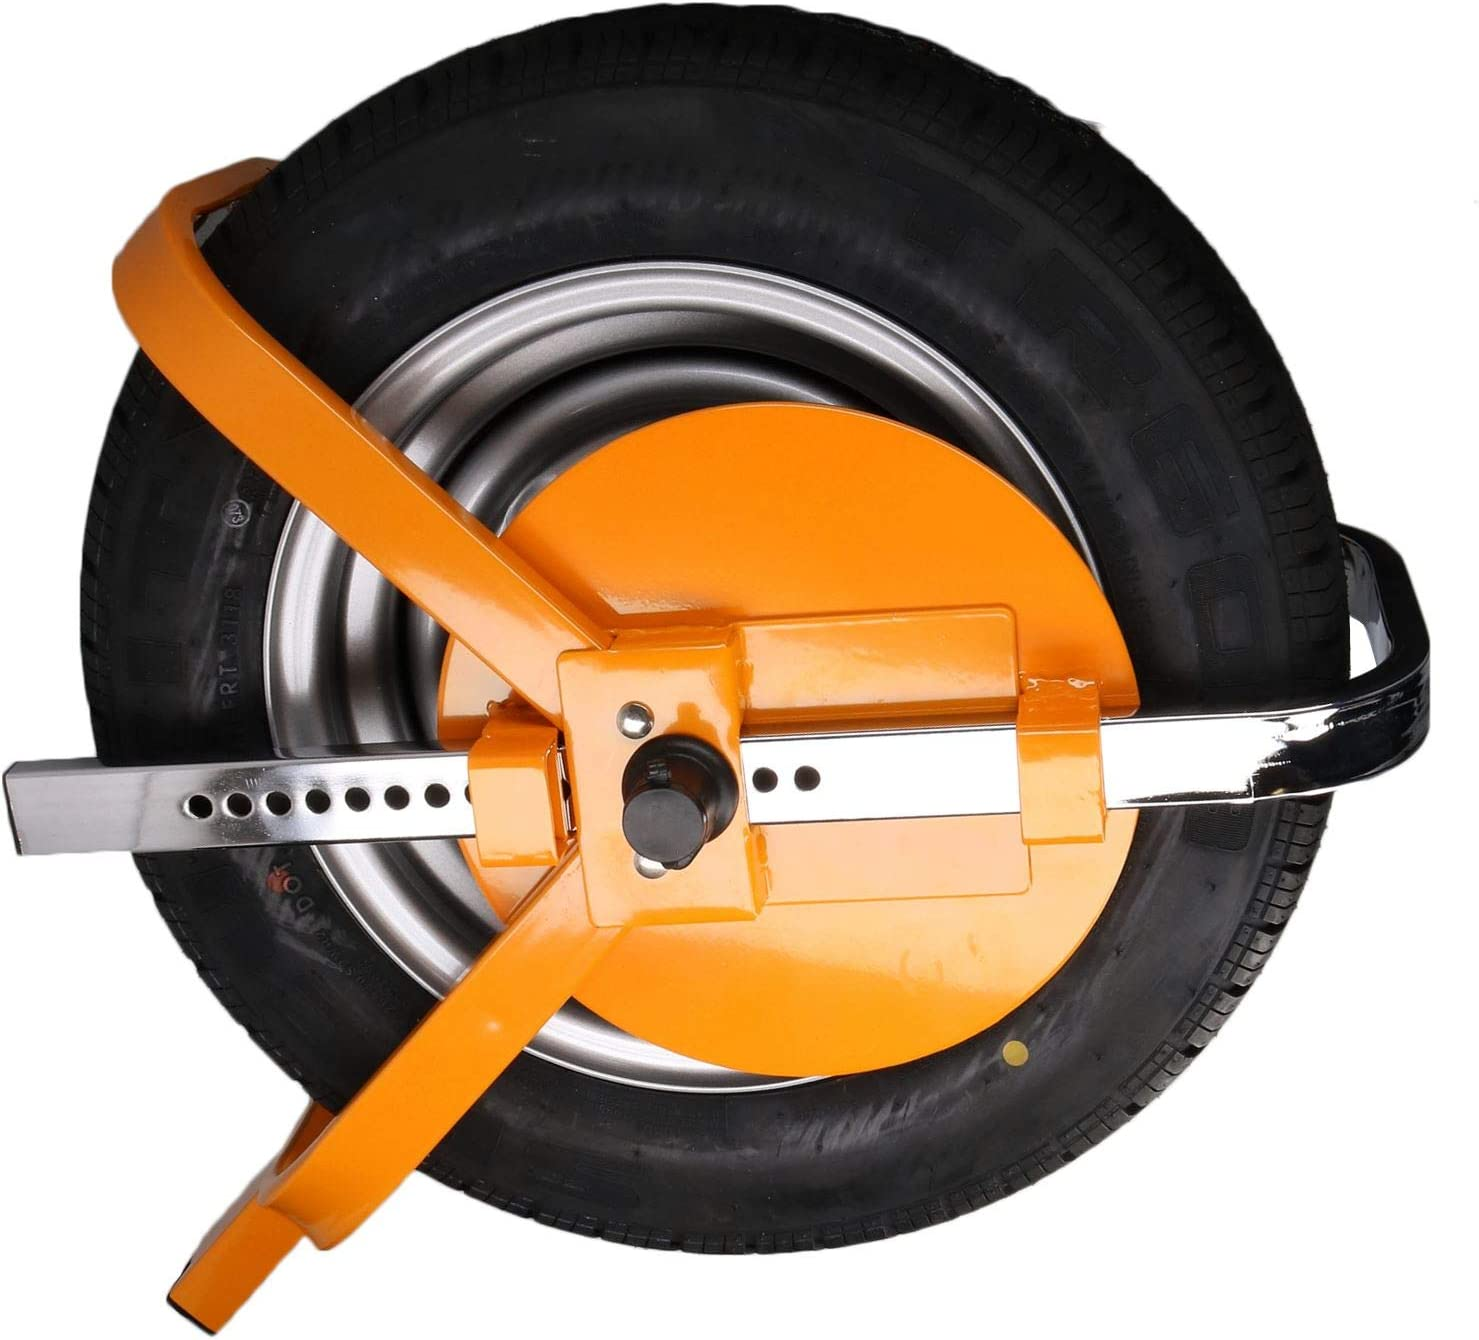 Wheel Clamp Trailer Caravan Steel Security Lock 8 10 Wheels